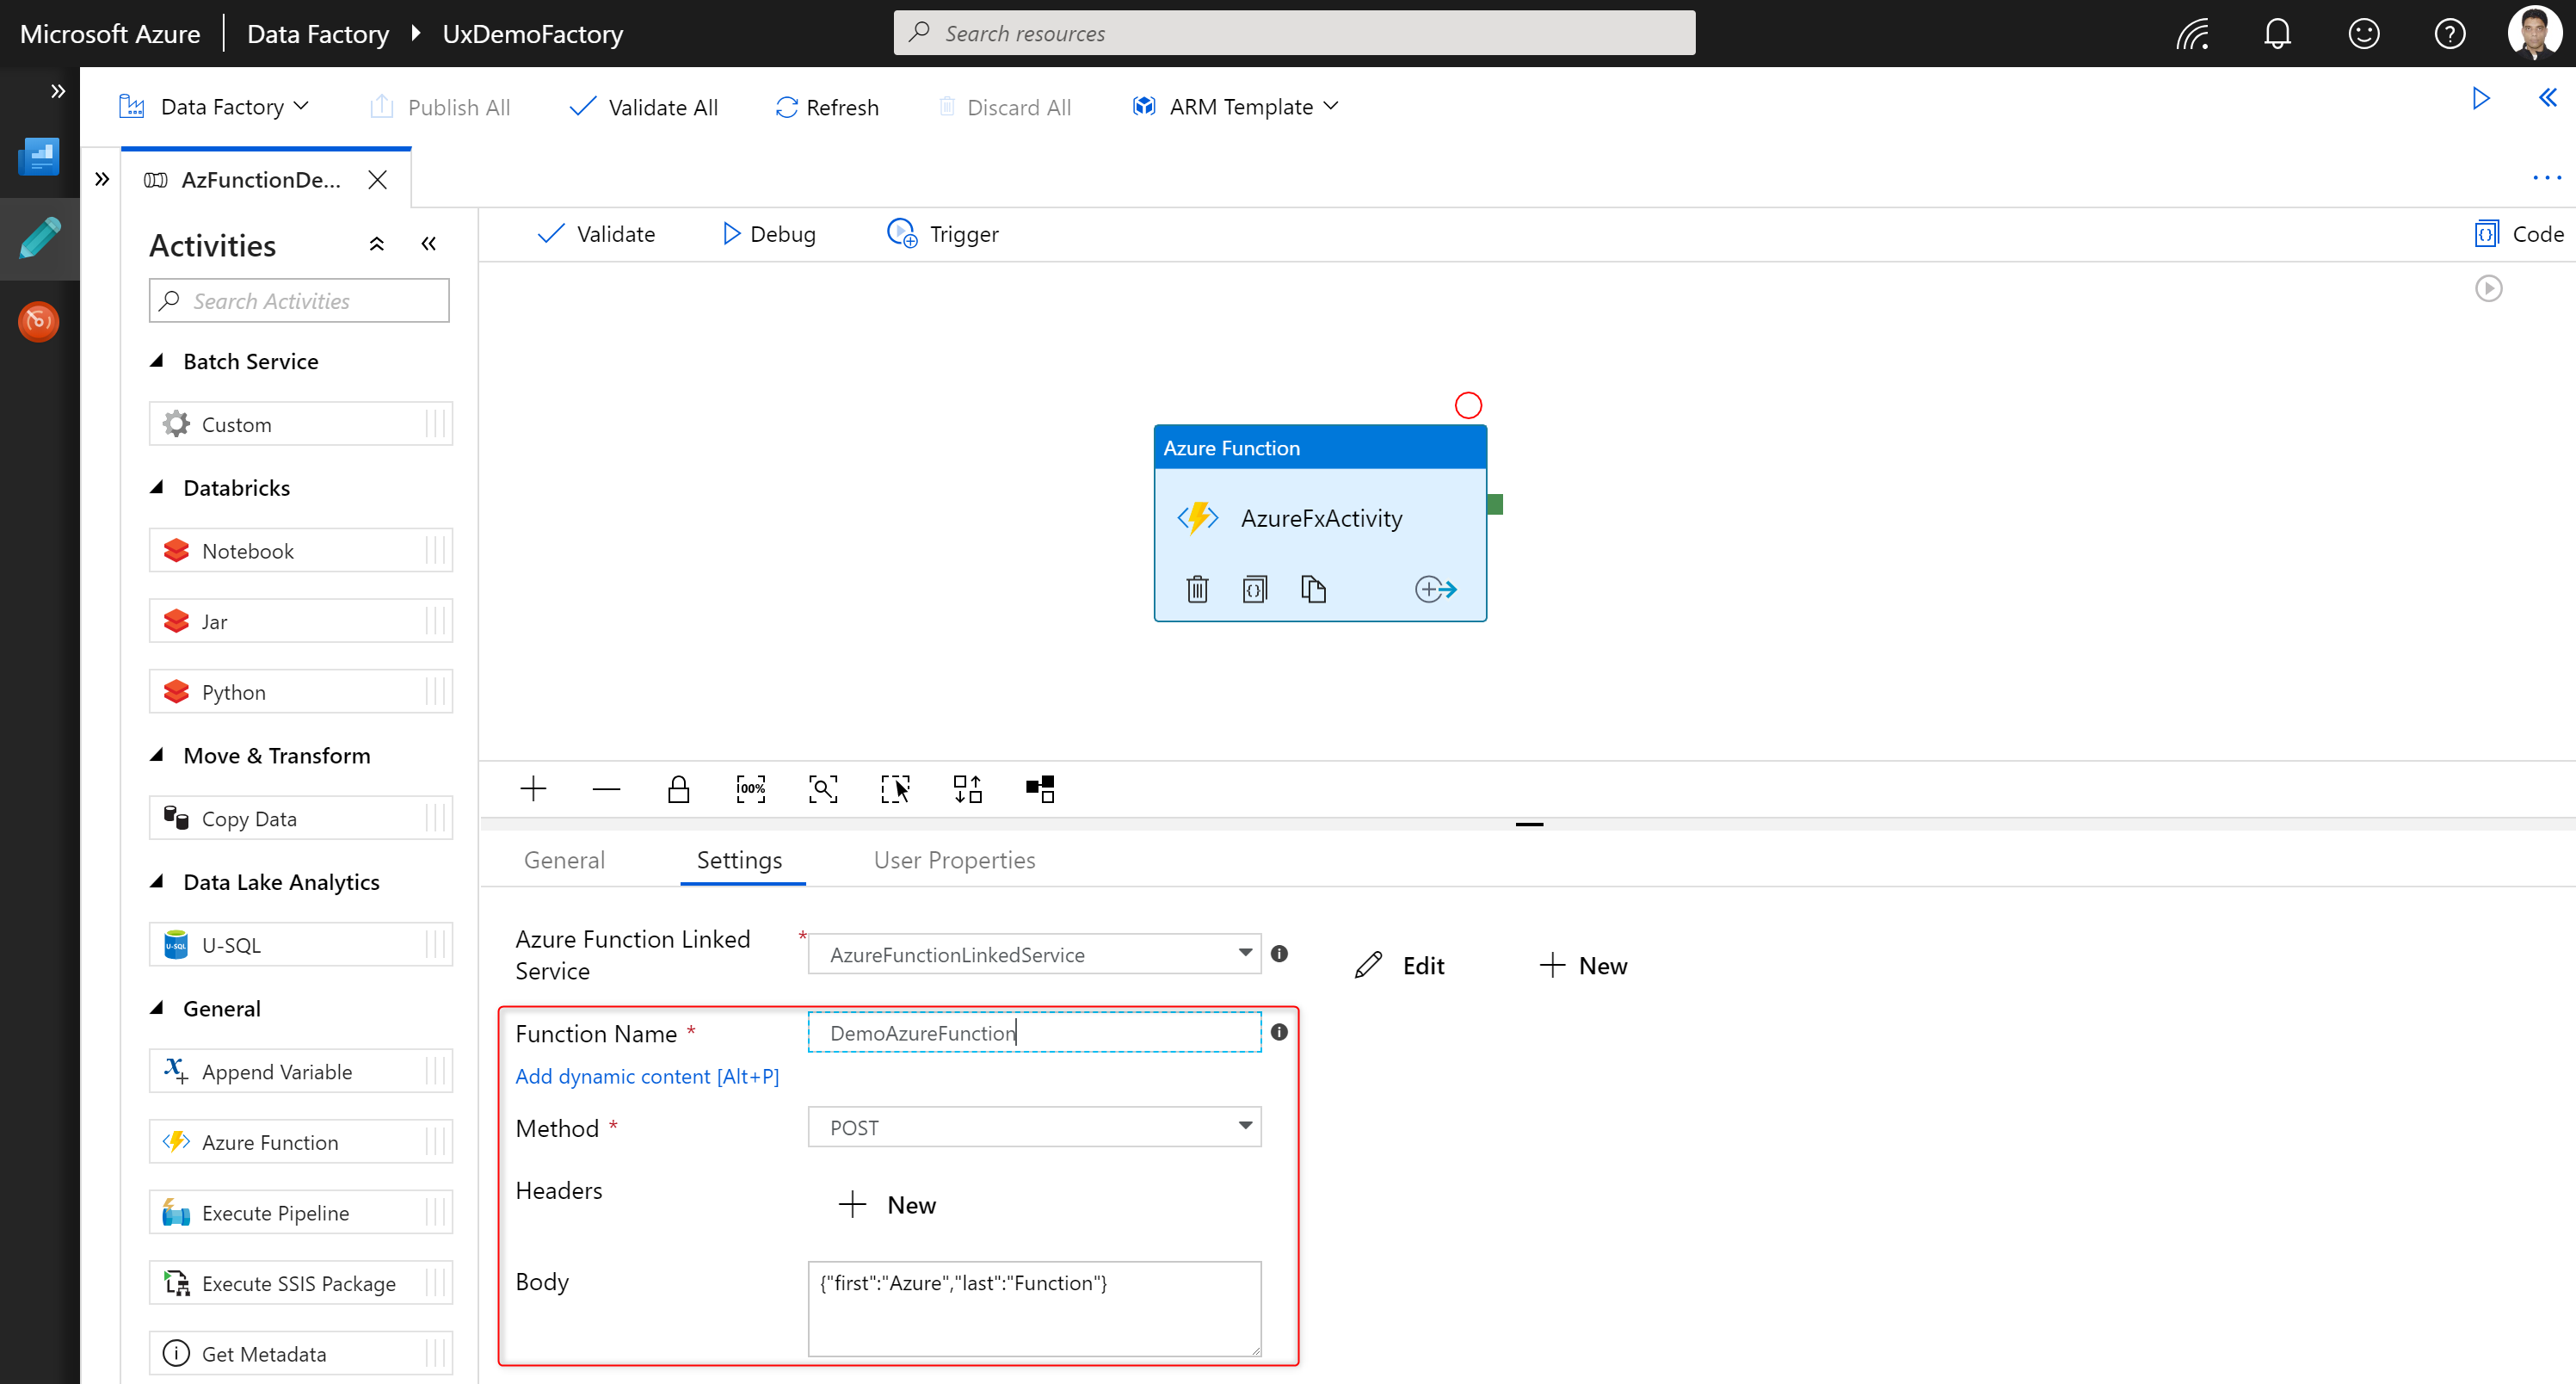 Screenshot of the Azure portal showing an Azure Function activity inside a data factory pipeline